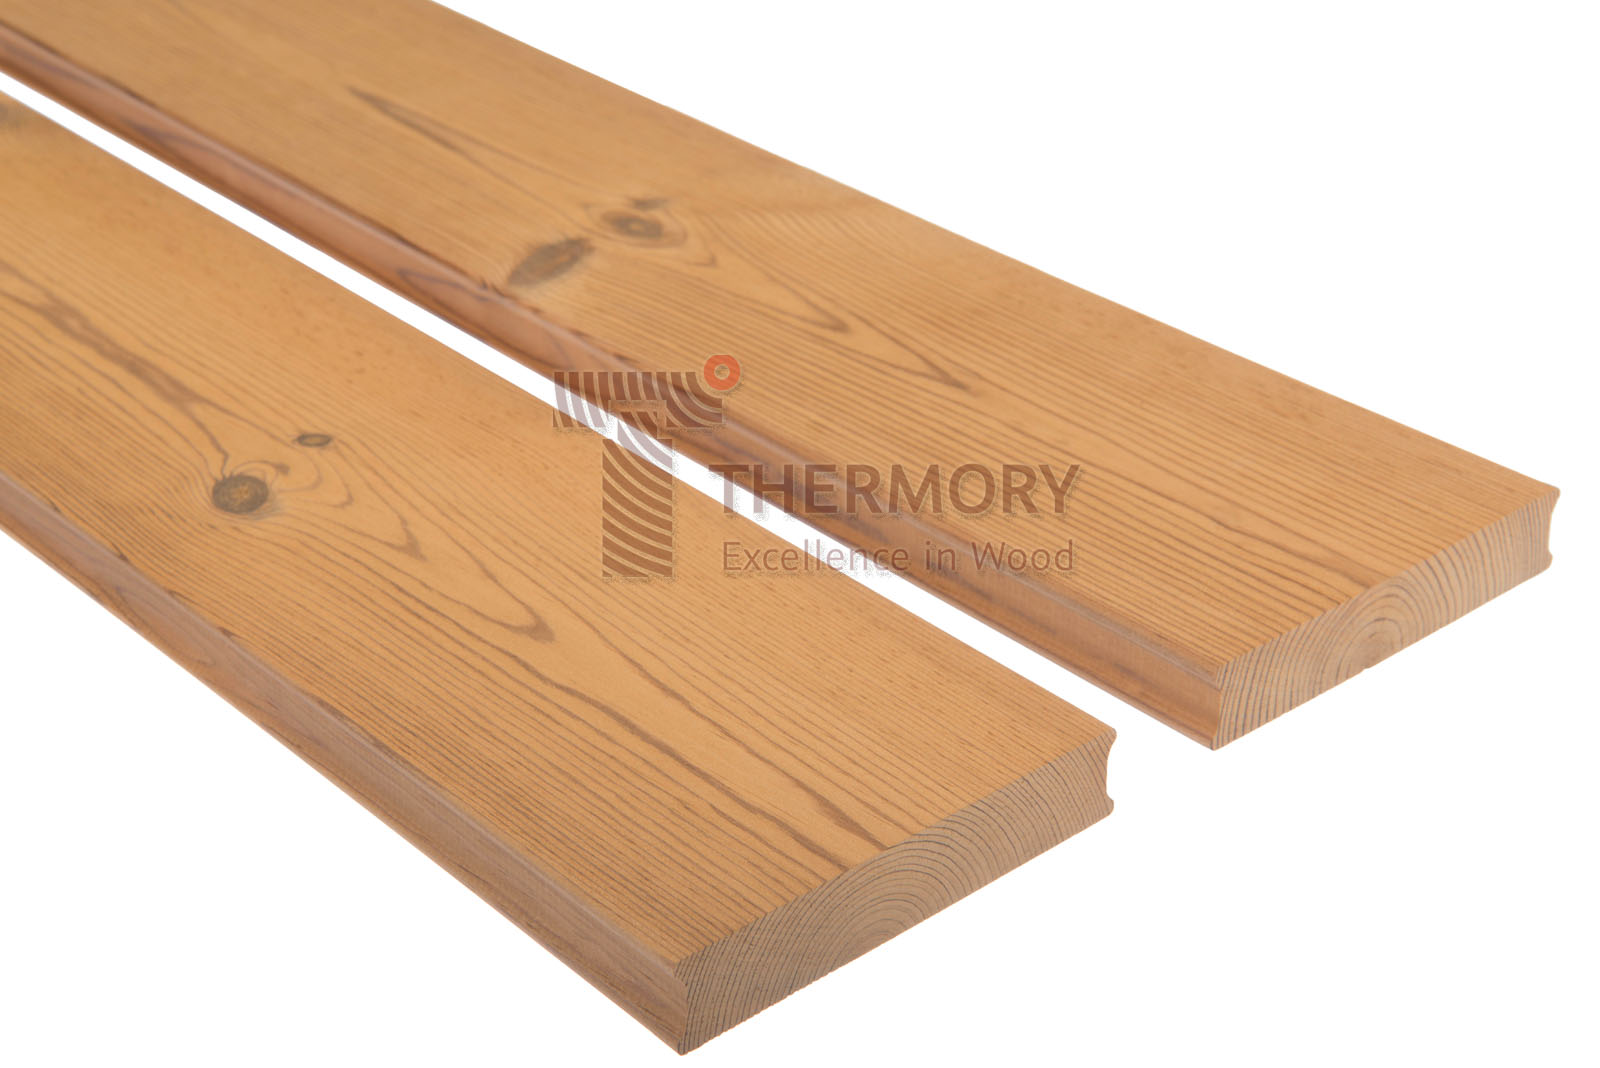 D34 26x140mm (country finish) -